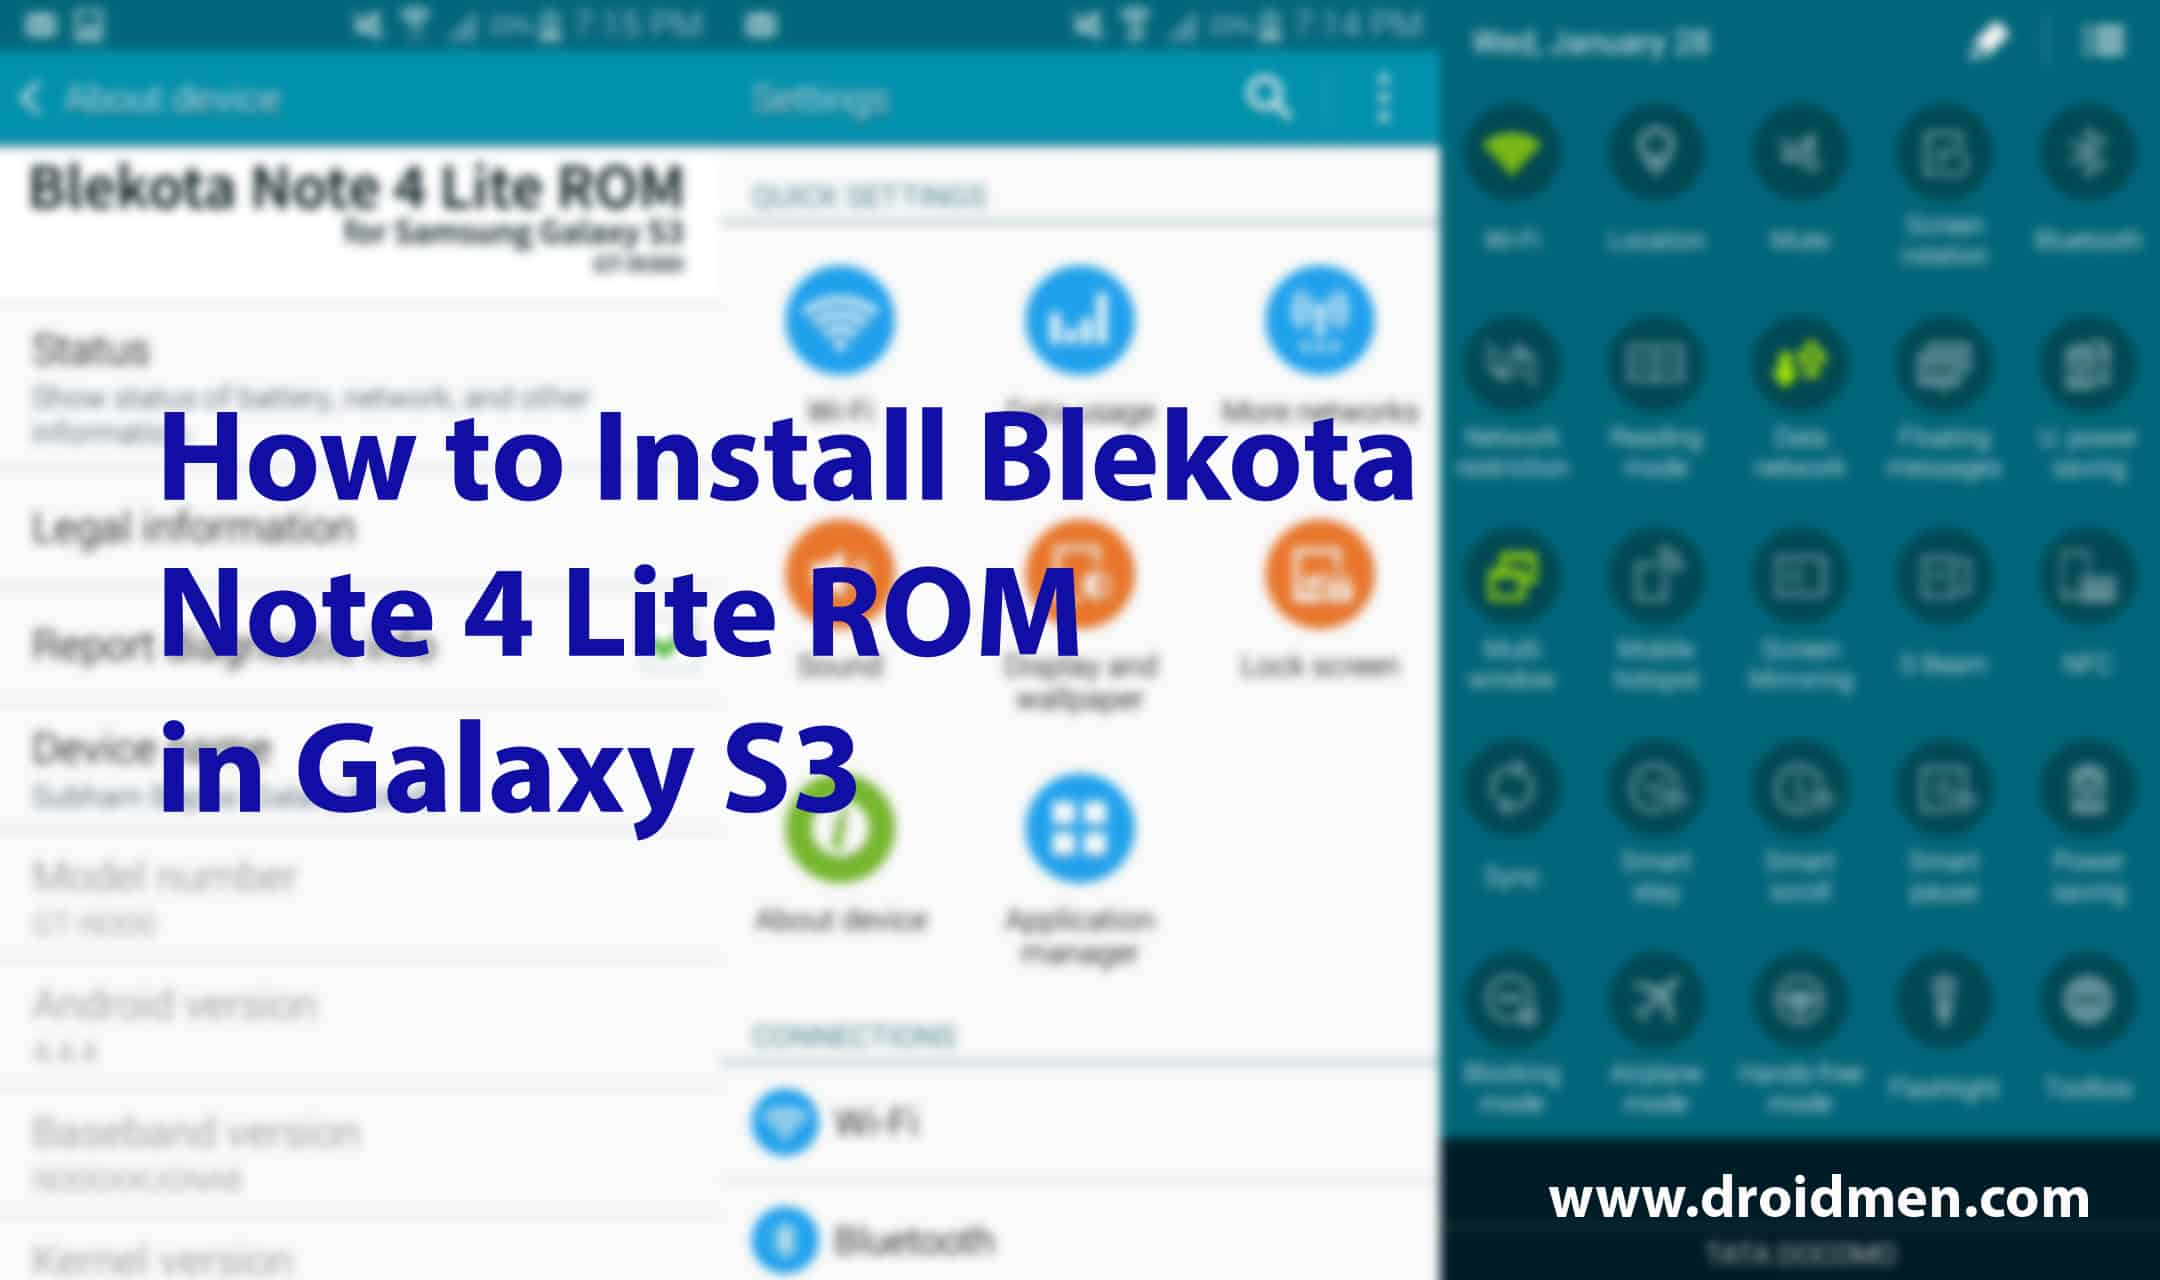 Blekota Note 4 Version 4.4+ ROM Brings Galaxy S6's Lollipop Based UI to Galaxy S3. 1